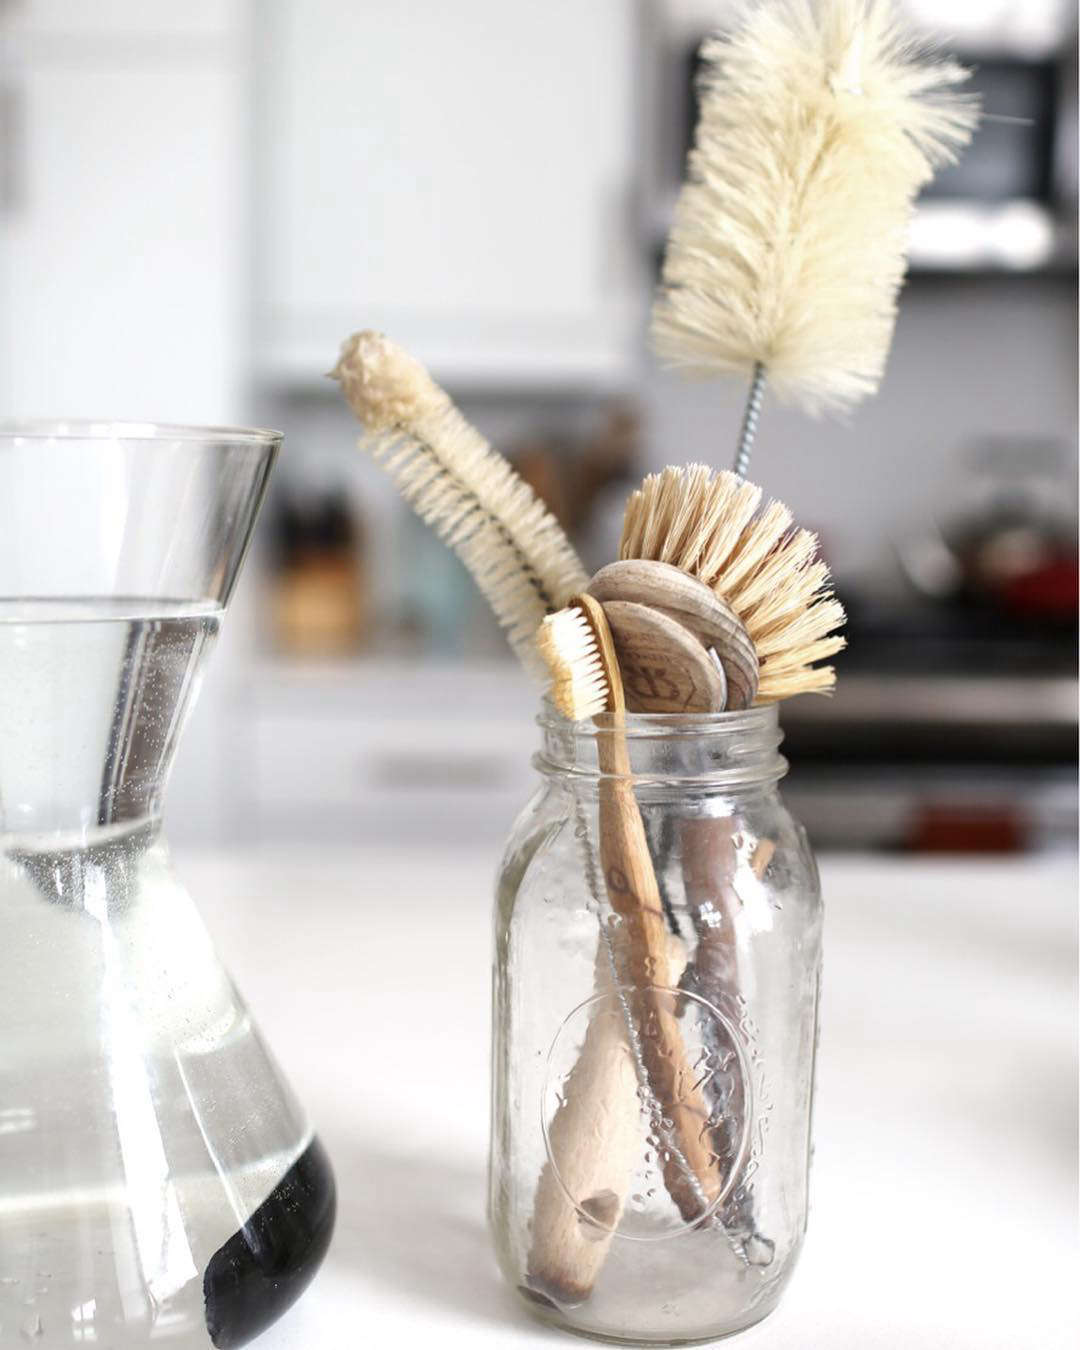 Singer's ensemble of kitchen tools, includes Redecker's biodegradable Dishwashing Brush, $12.50; a Bamboo Toothbrush, $4.99—she uses her old one for scrubbing stains; and Bottle Brushes, $11.85, all from the Package Free Shop.